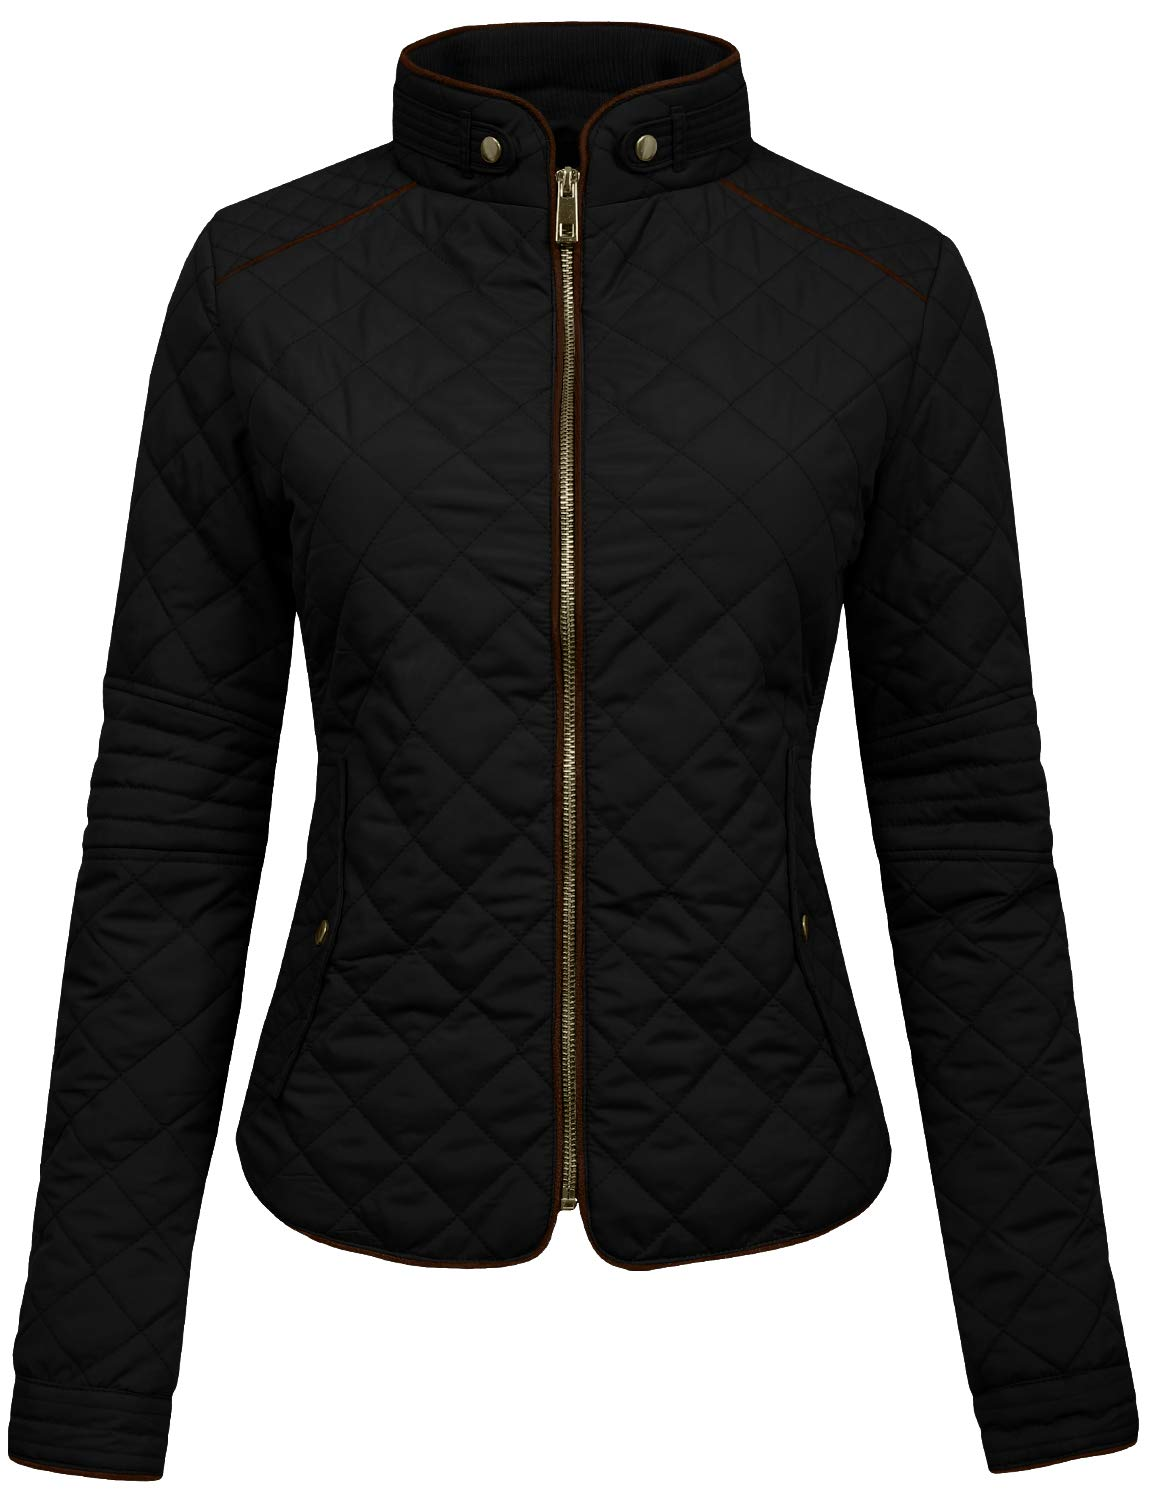 NE PEOPLE Womens Lightweight Quilted Zip Jacket, Small, NEWJ22BLACK by NE PEOPLE